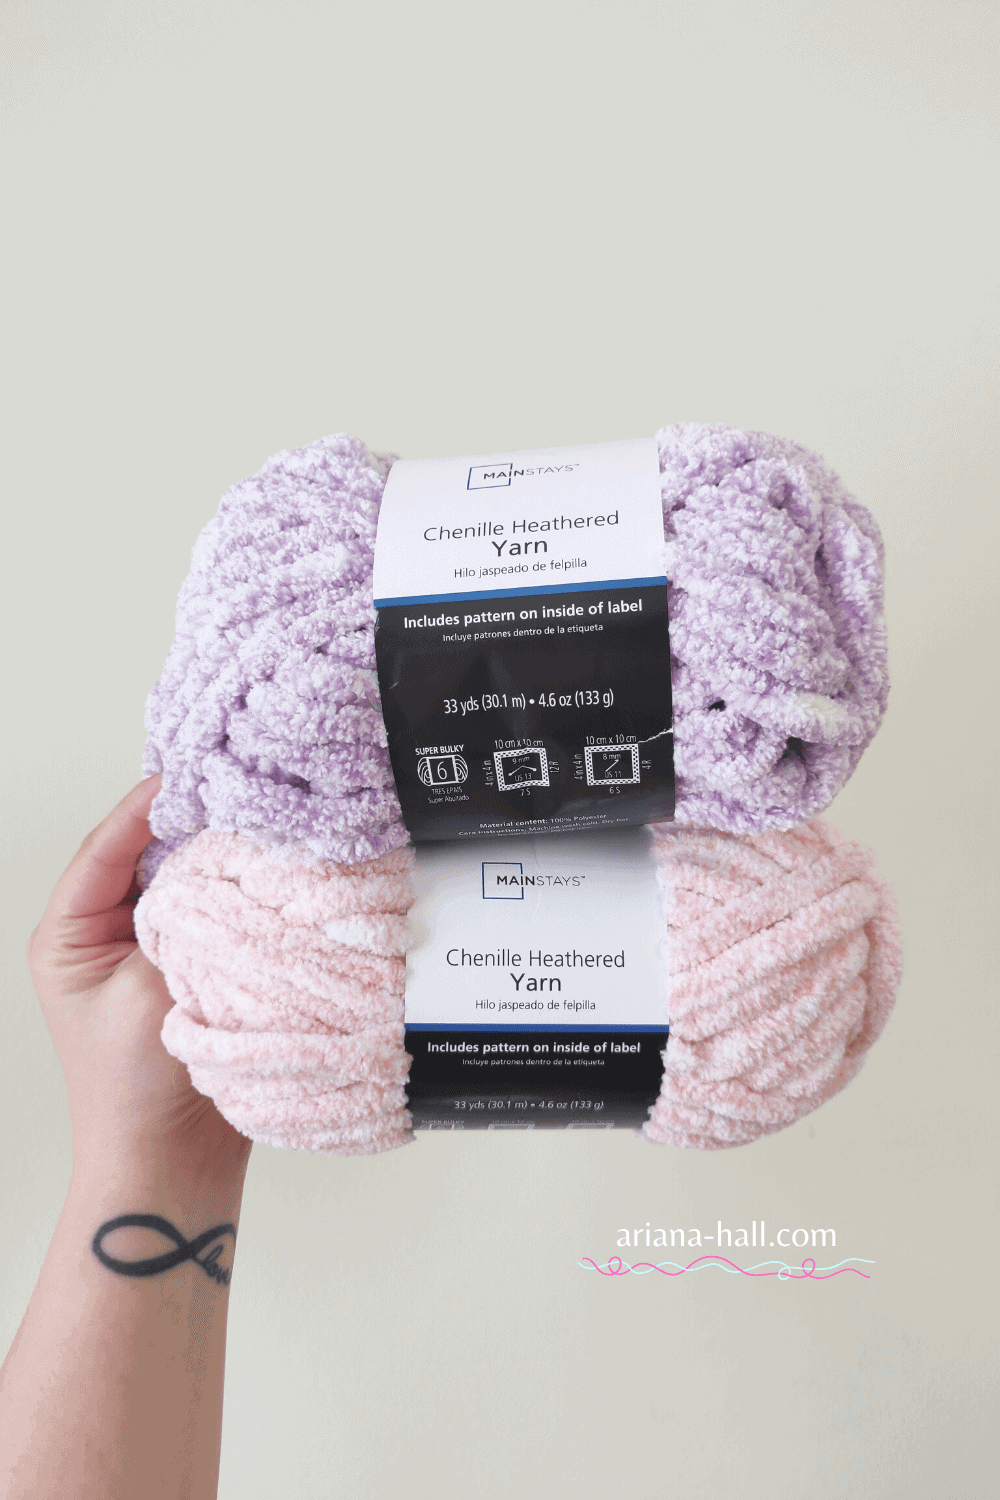 One pink and one purple skeins of yarn.